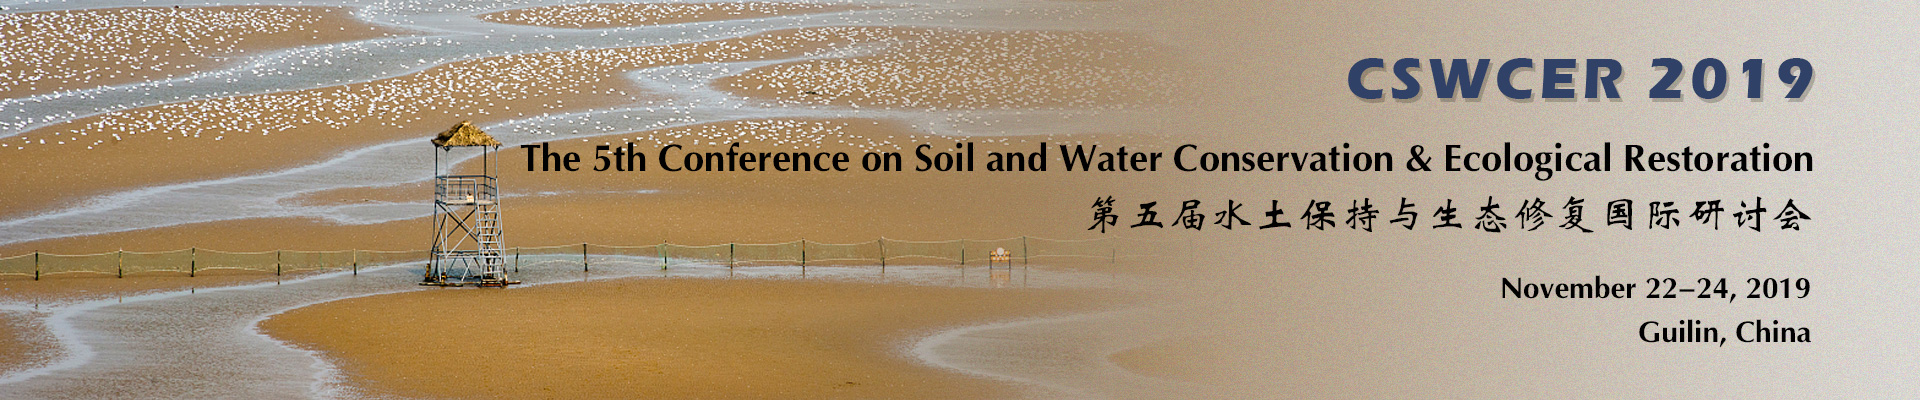 The 5th Conference on Soil and Water Conservation & Ecological Restoration (CSWCER 2019), Guilin, Guangxi, China